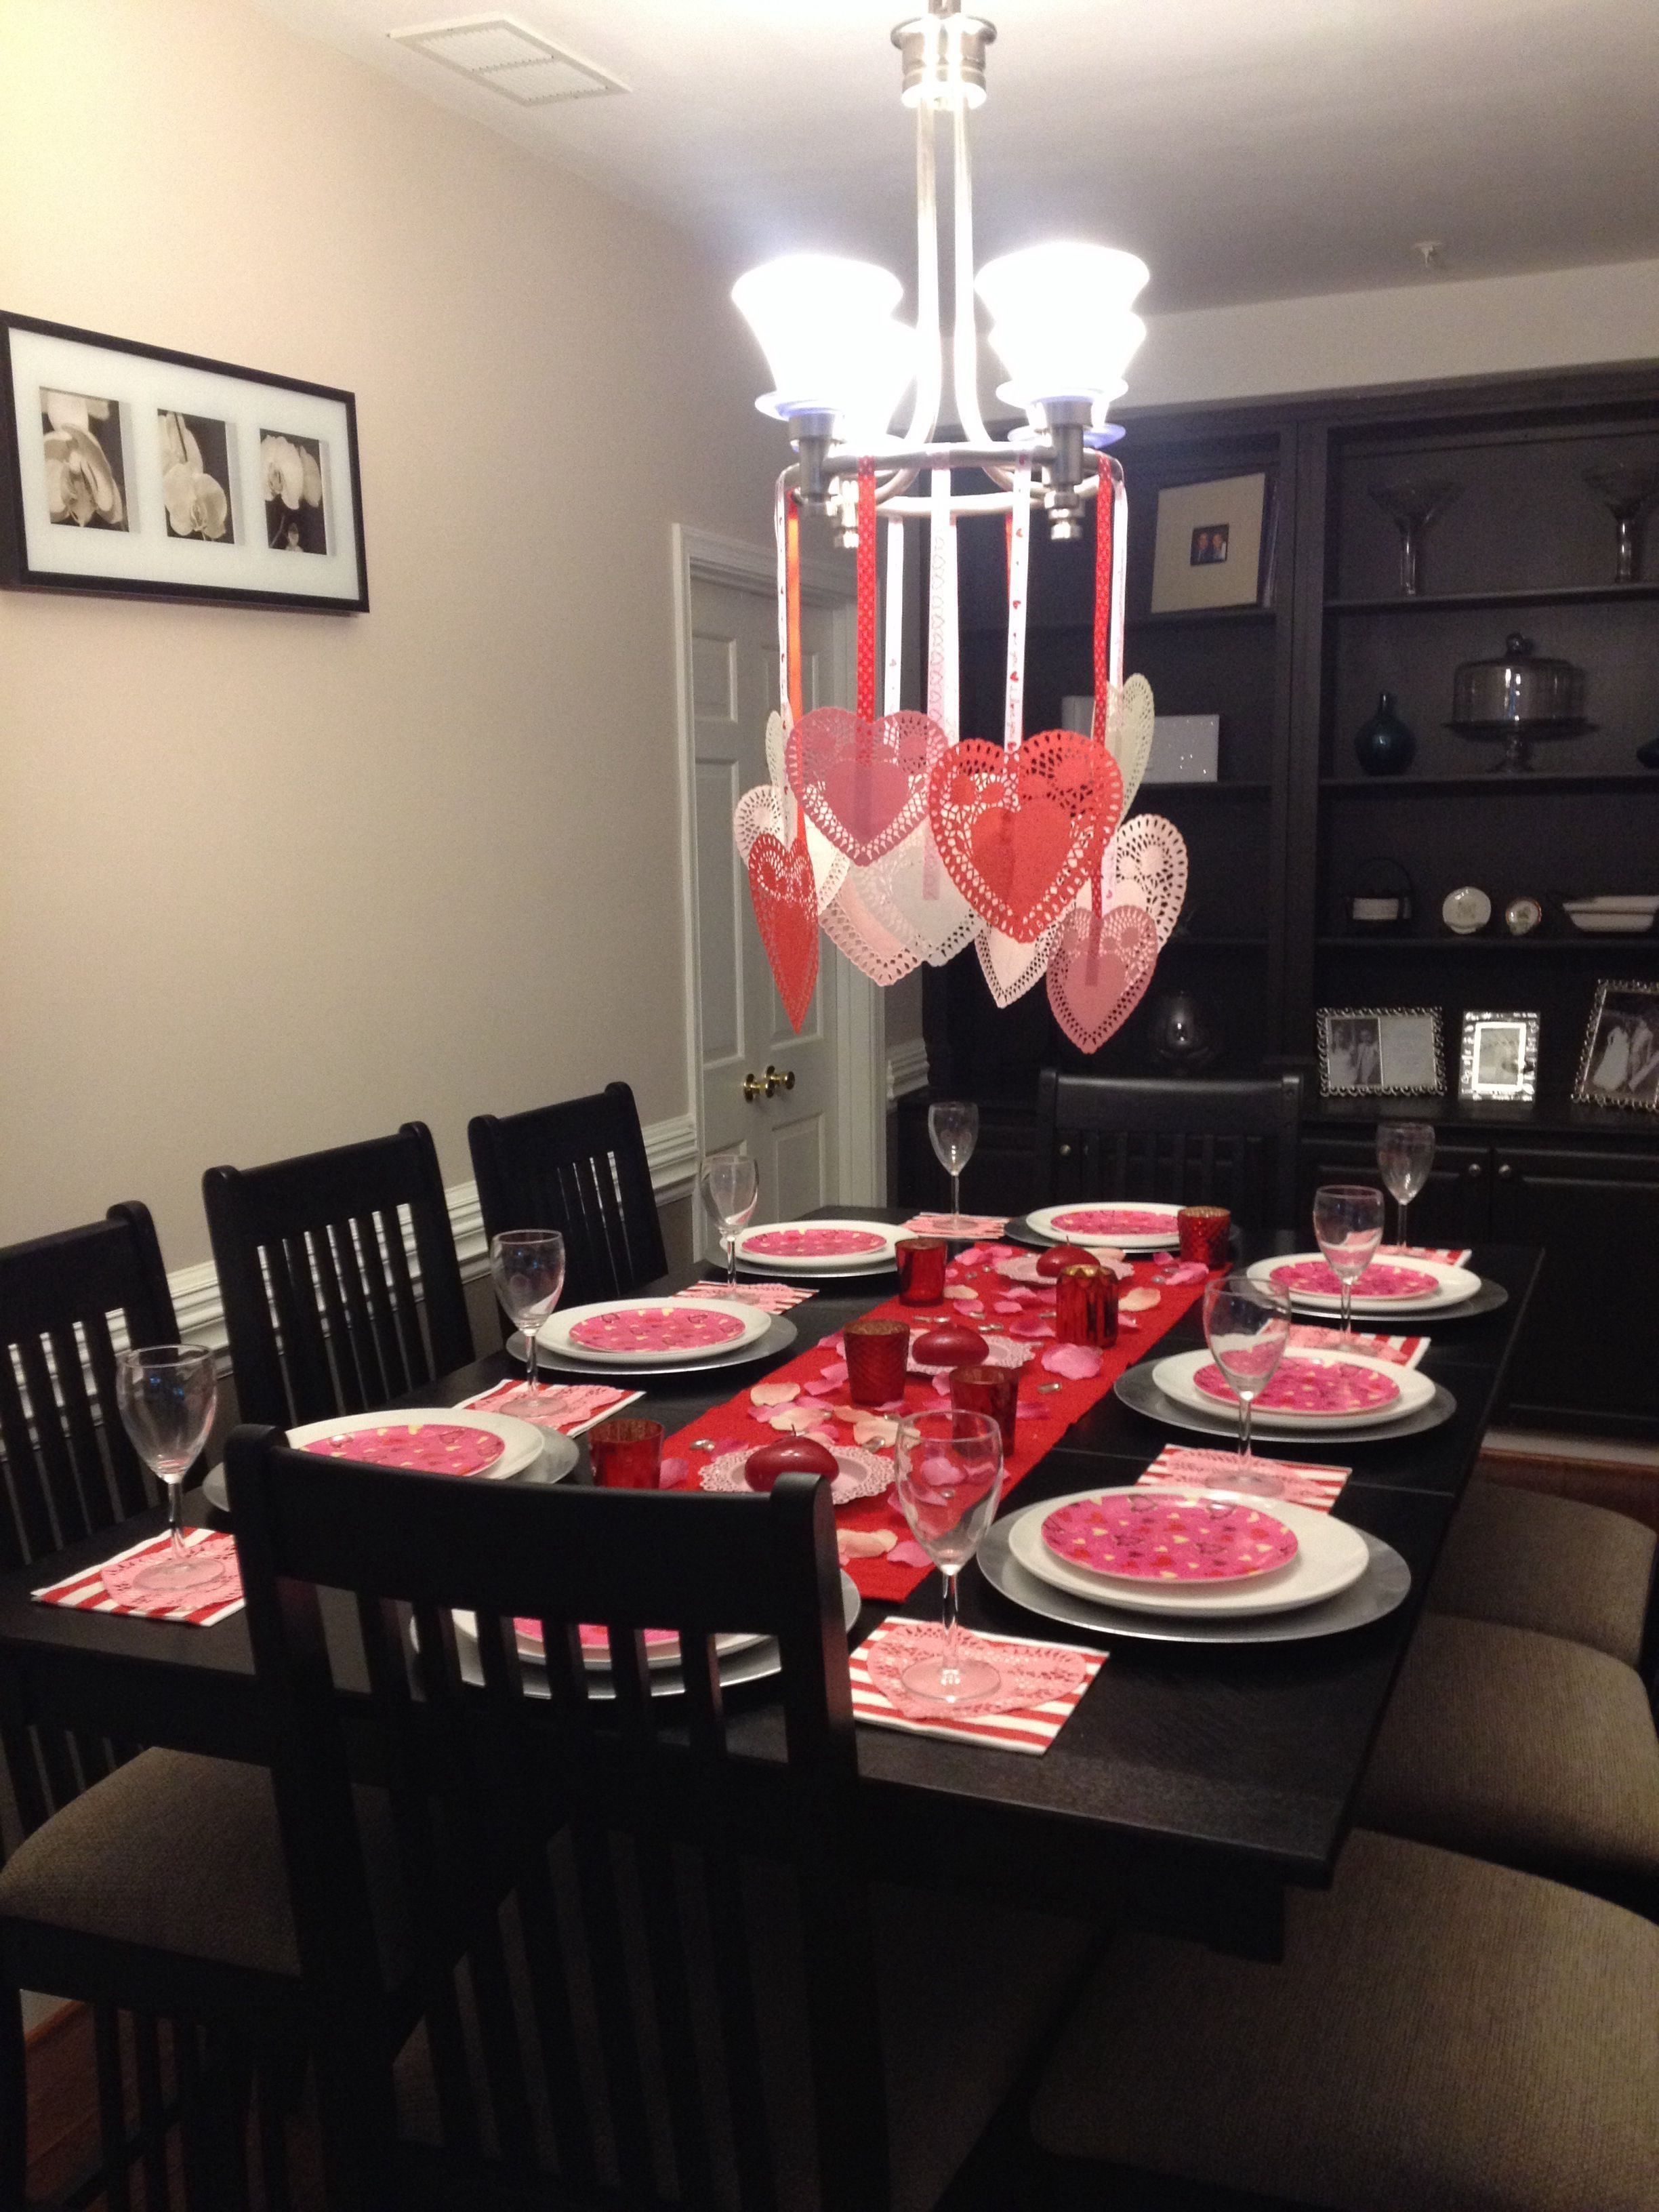 46 Cheap Valentine Table Decoration Ideas In 2020 Valentines Party Decor Valentine Day Table Decorations Family Valentines Day